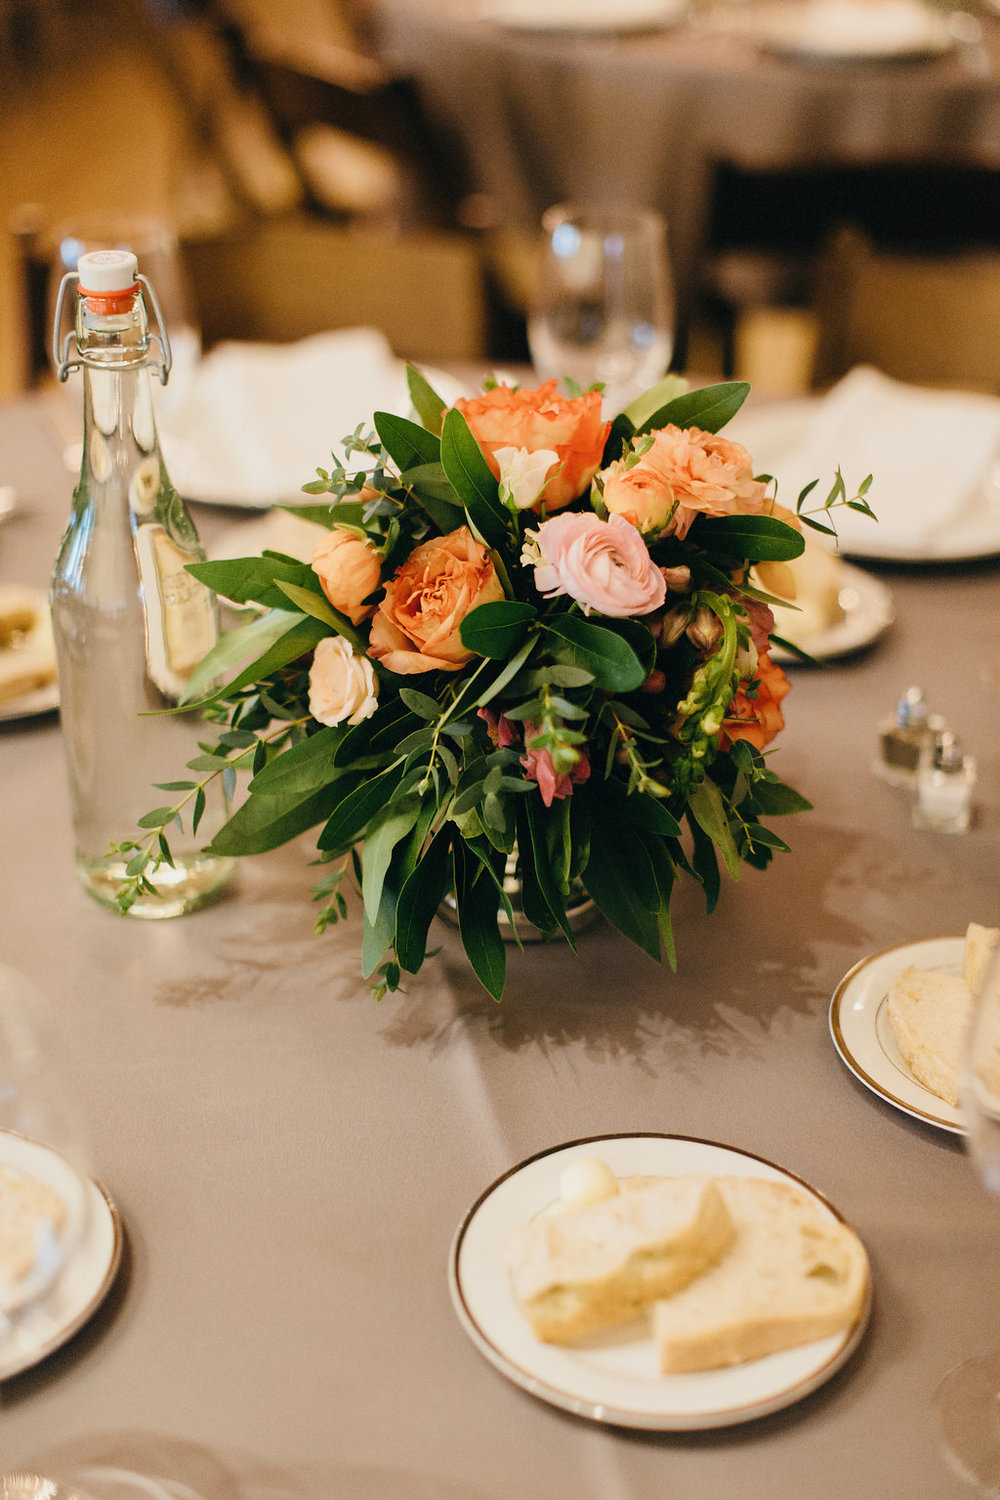 Wedding guest table gray linen; Wild Bunches orange, green, yellow centerpiece - www.grantdanielsphotography.com